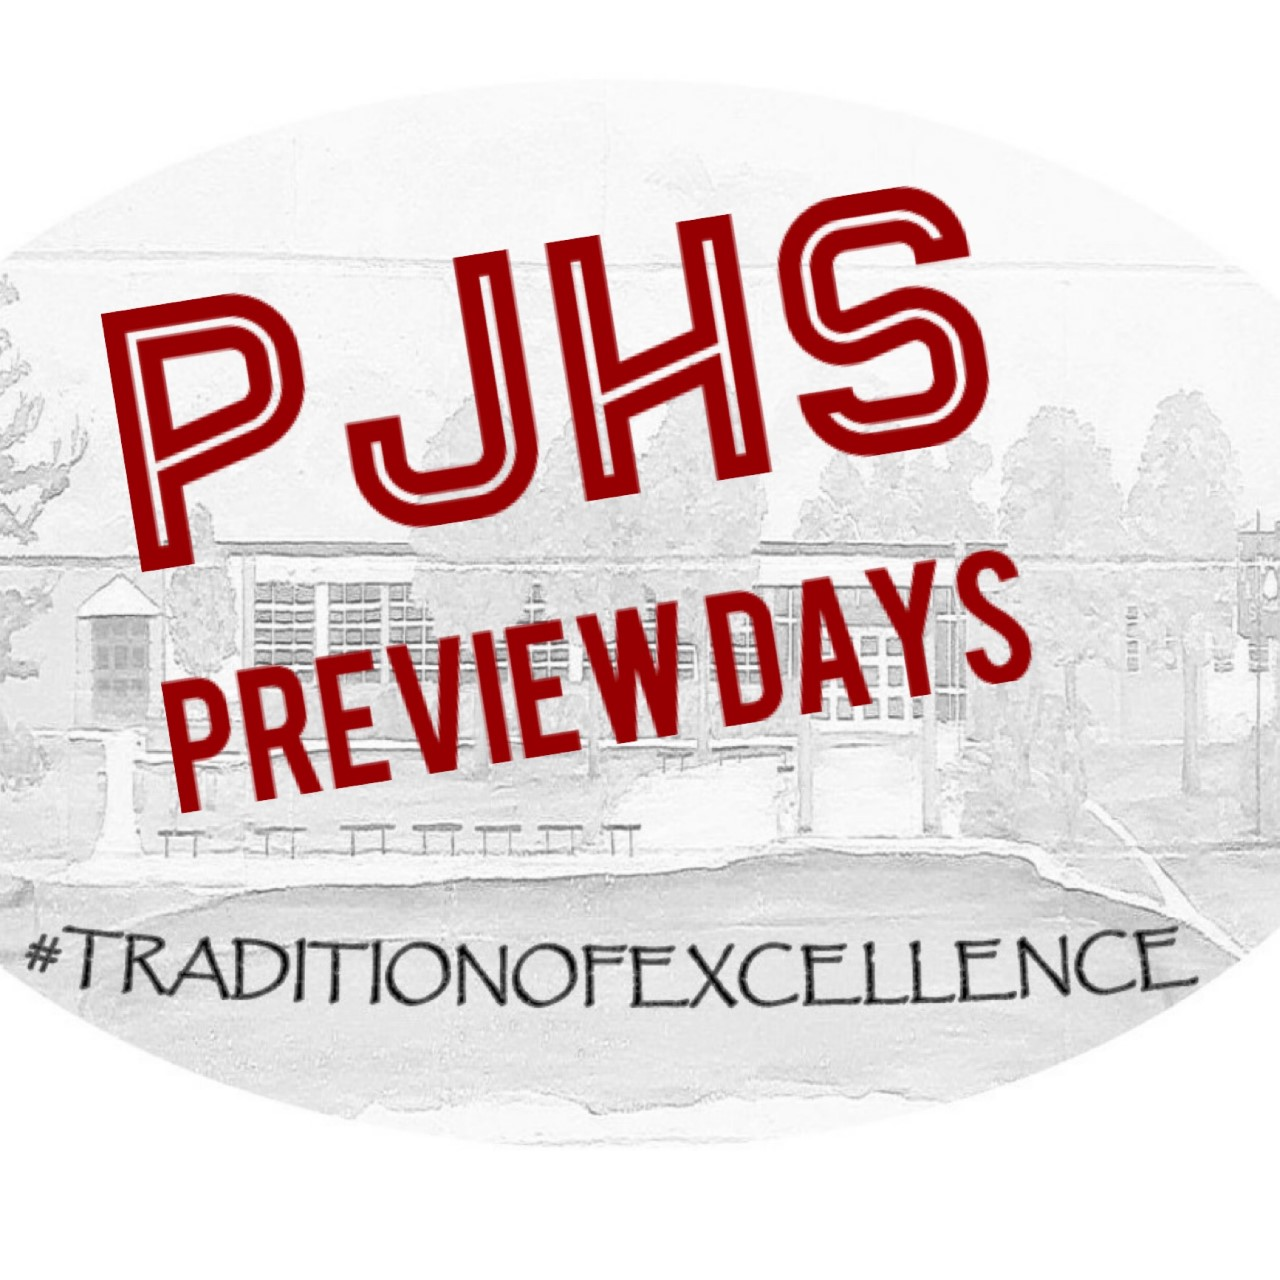 PJHS Preview Days